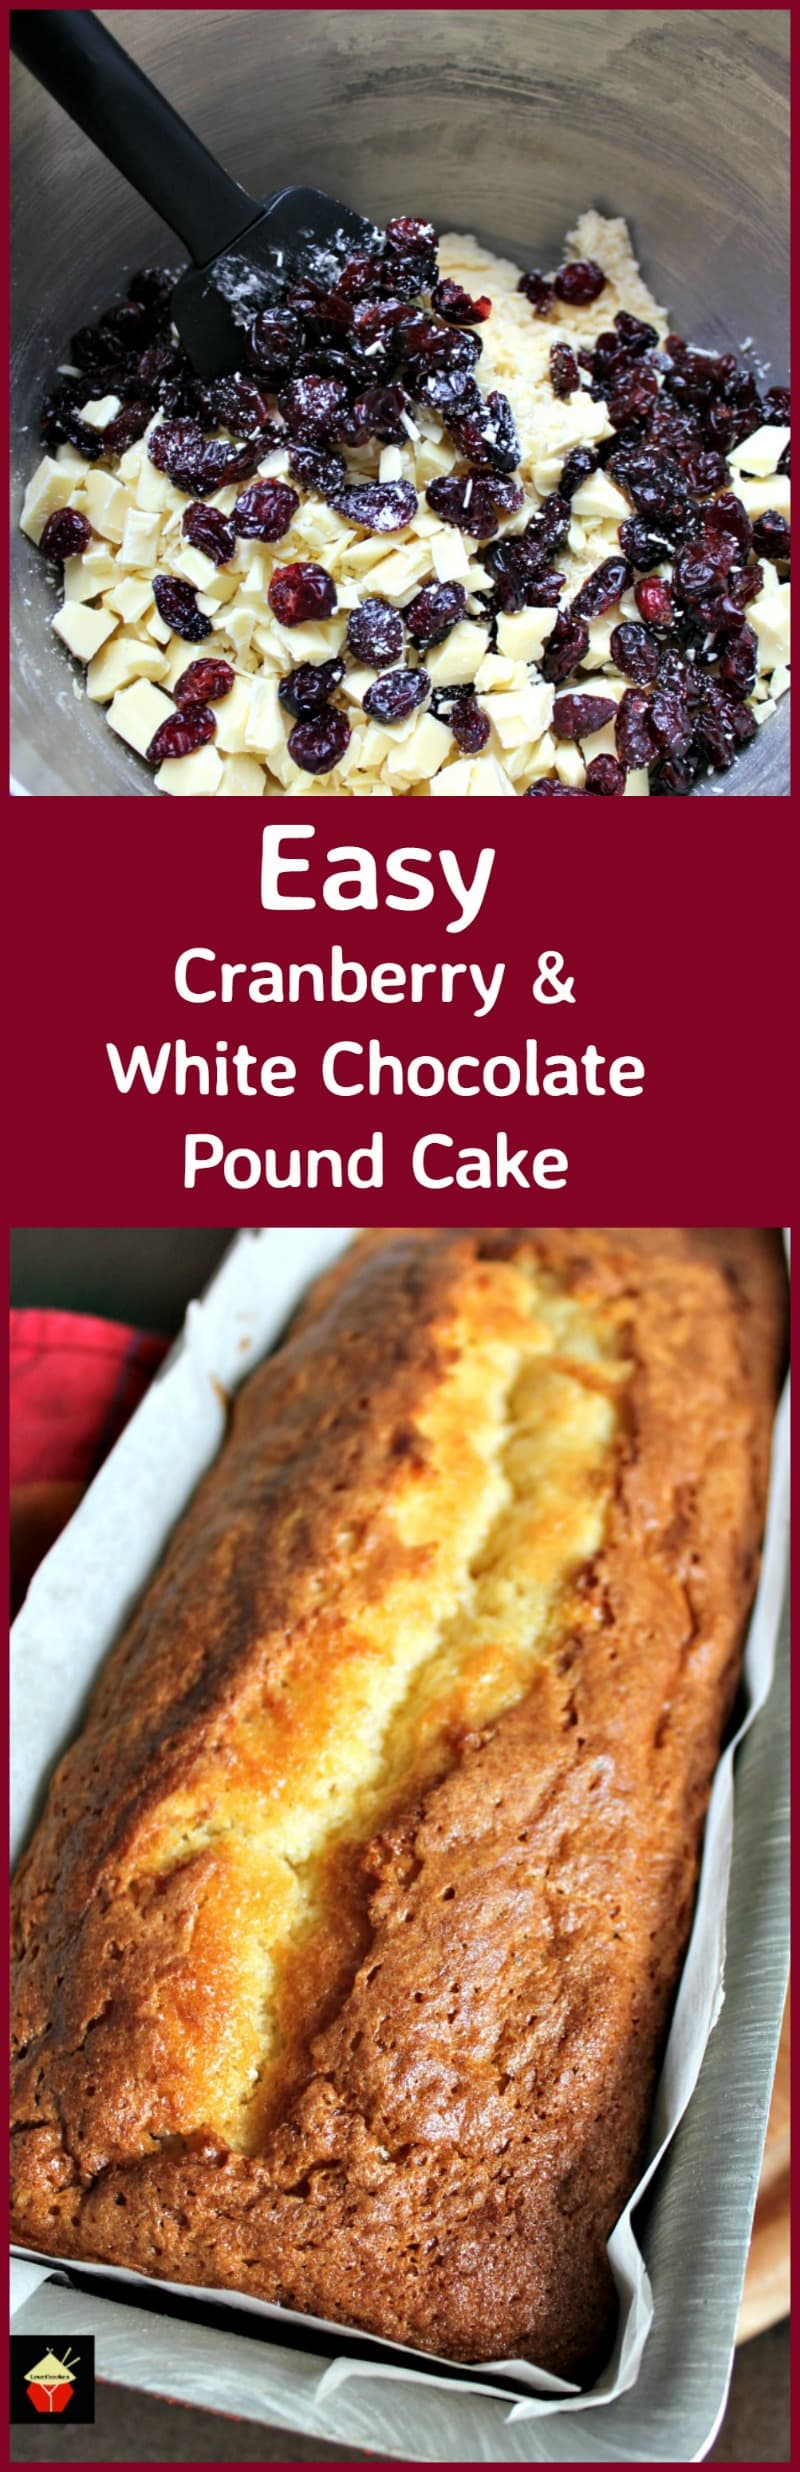 Easy Cranberry And White Chocolate Pound Cake Lovefoodies